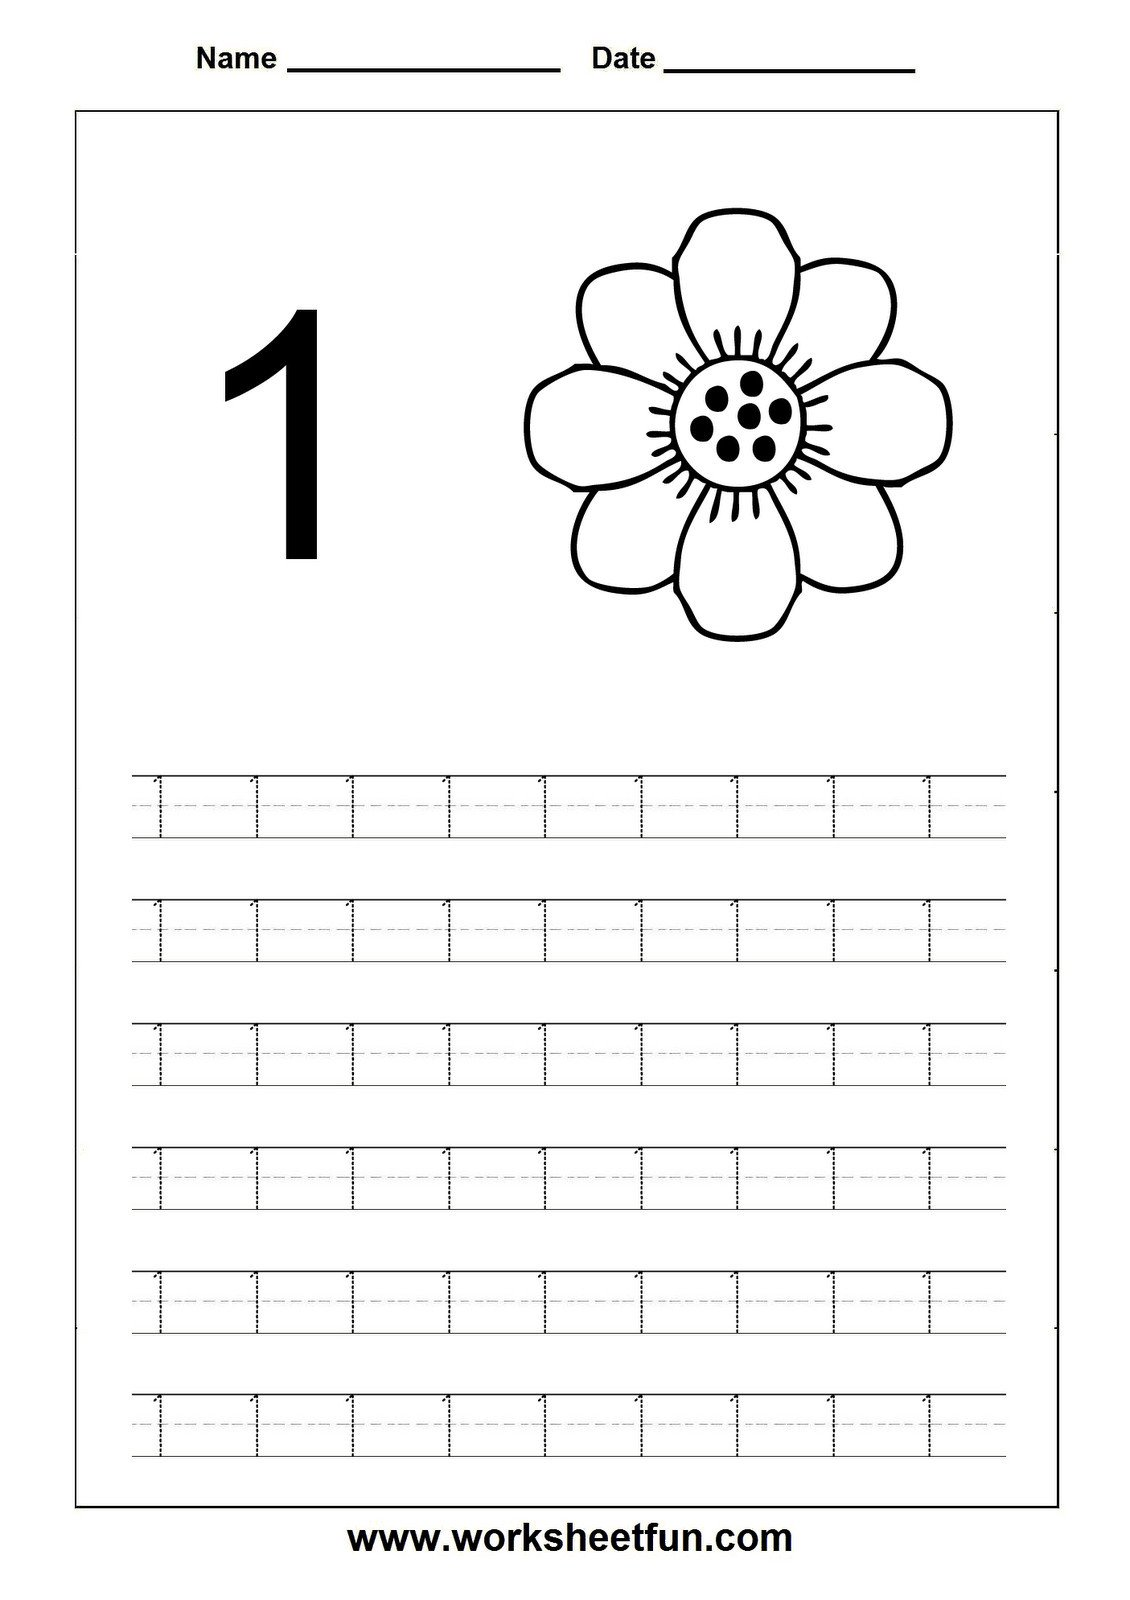 Tracing Number Worksheets 1 20 4 Worksheet Trace Number 1 20 Worksheet Printable